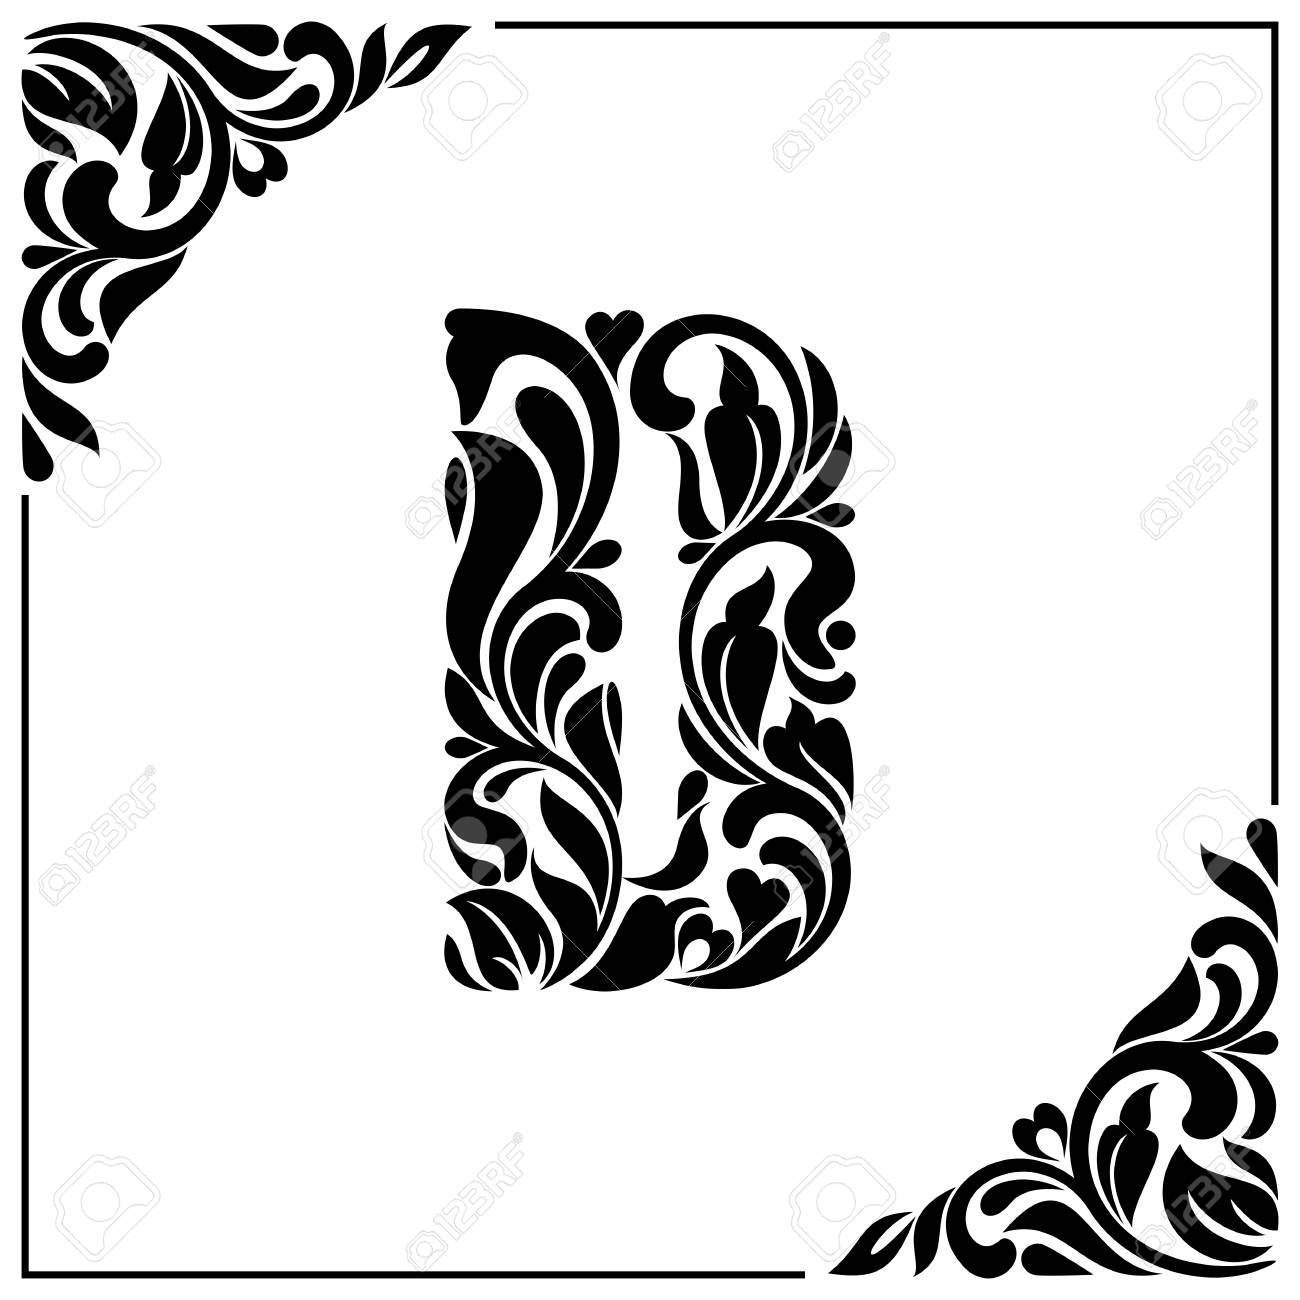 The letter D. Decorative Font with swirls and floral elements. Vintage  style Stock Vector ea88ac9f0